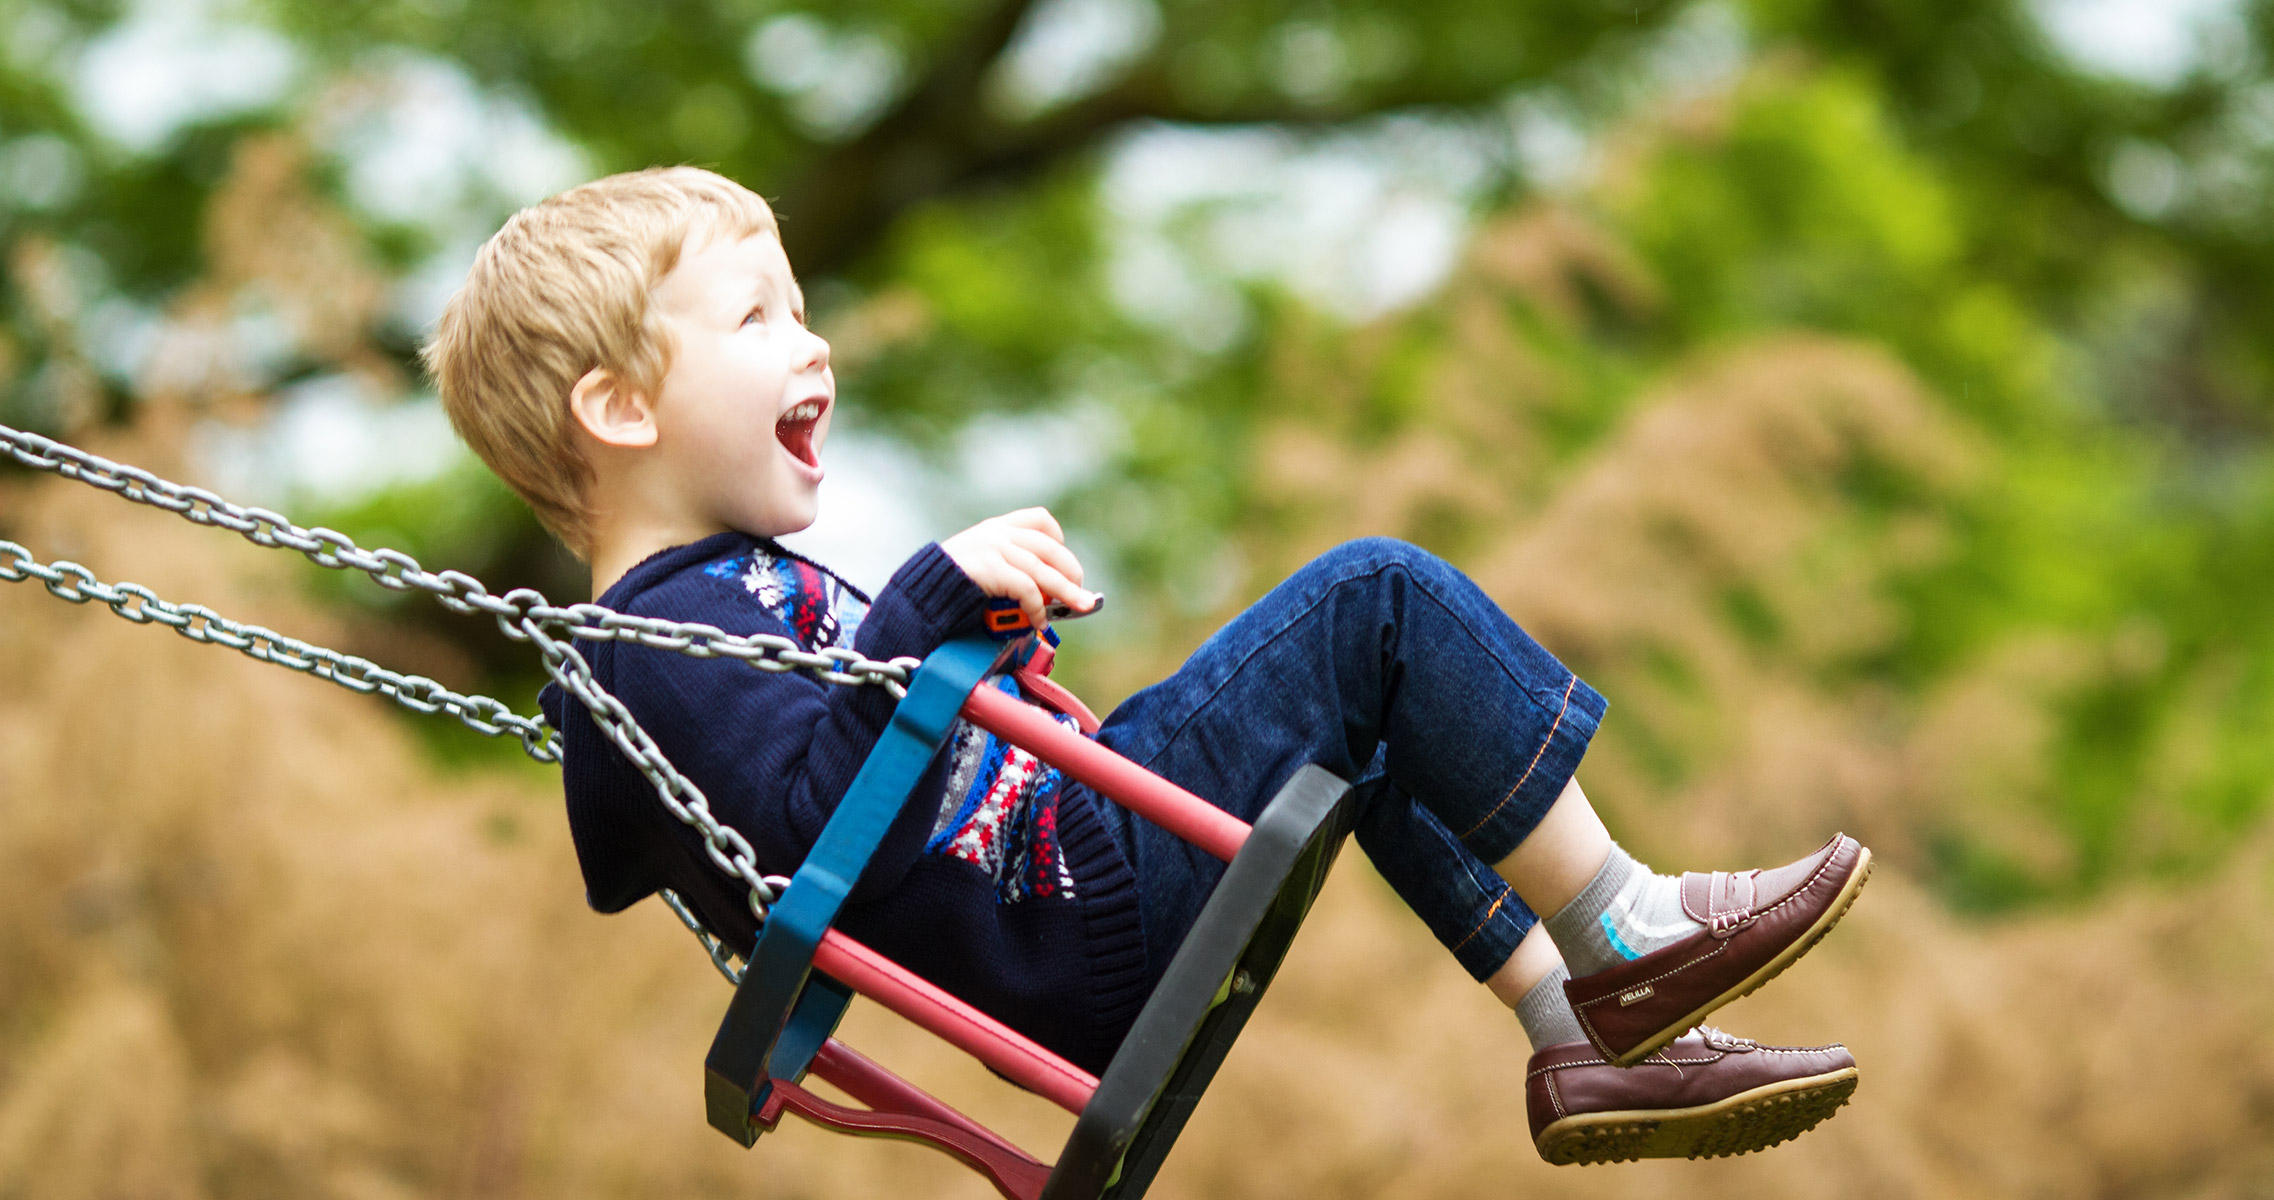 Young boy on swing